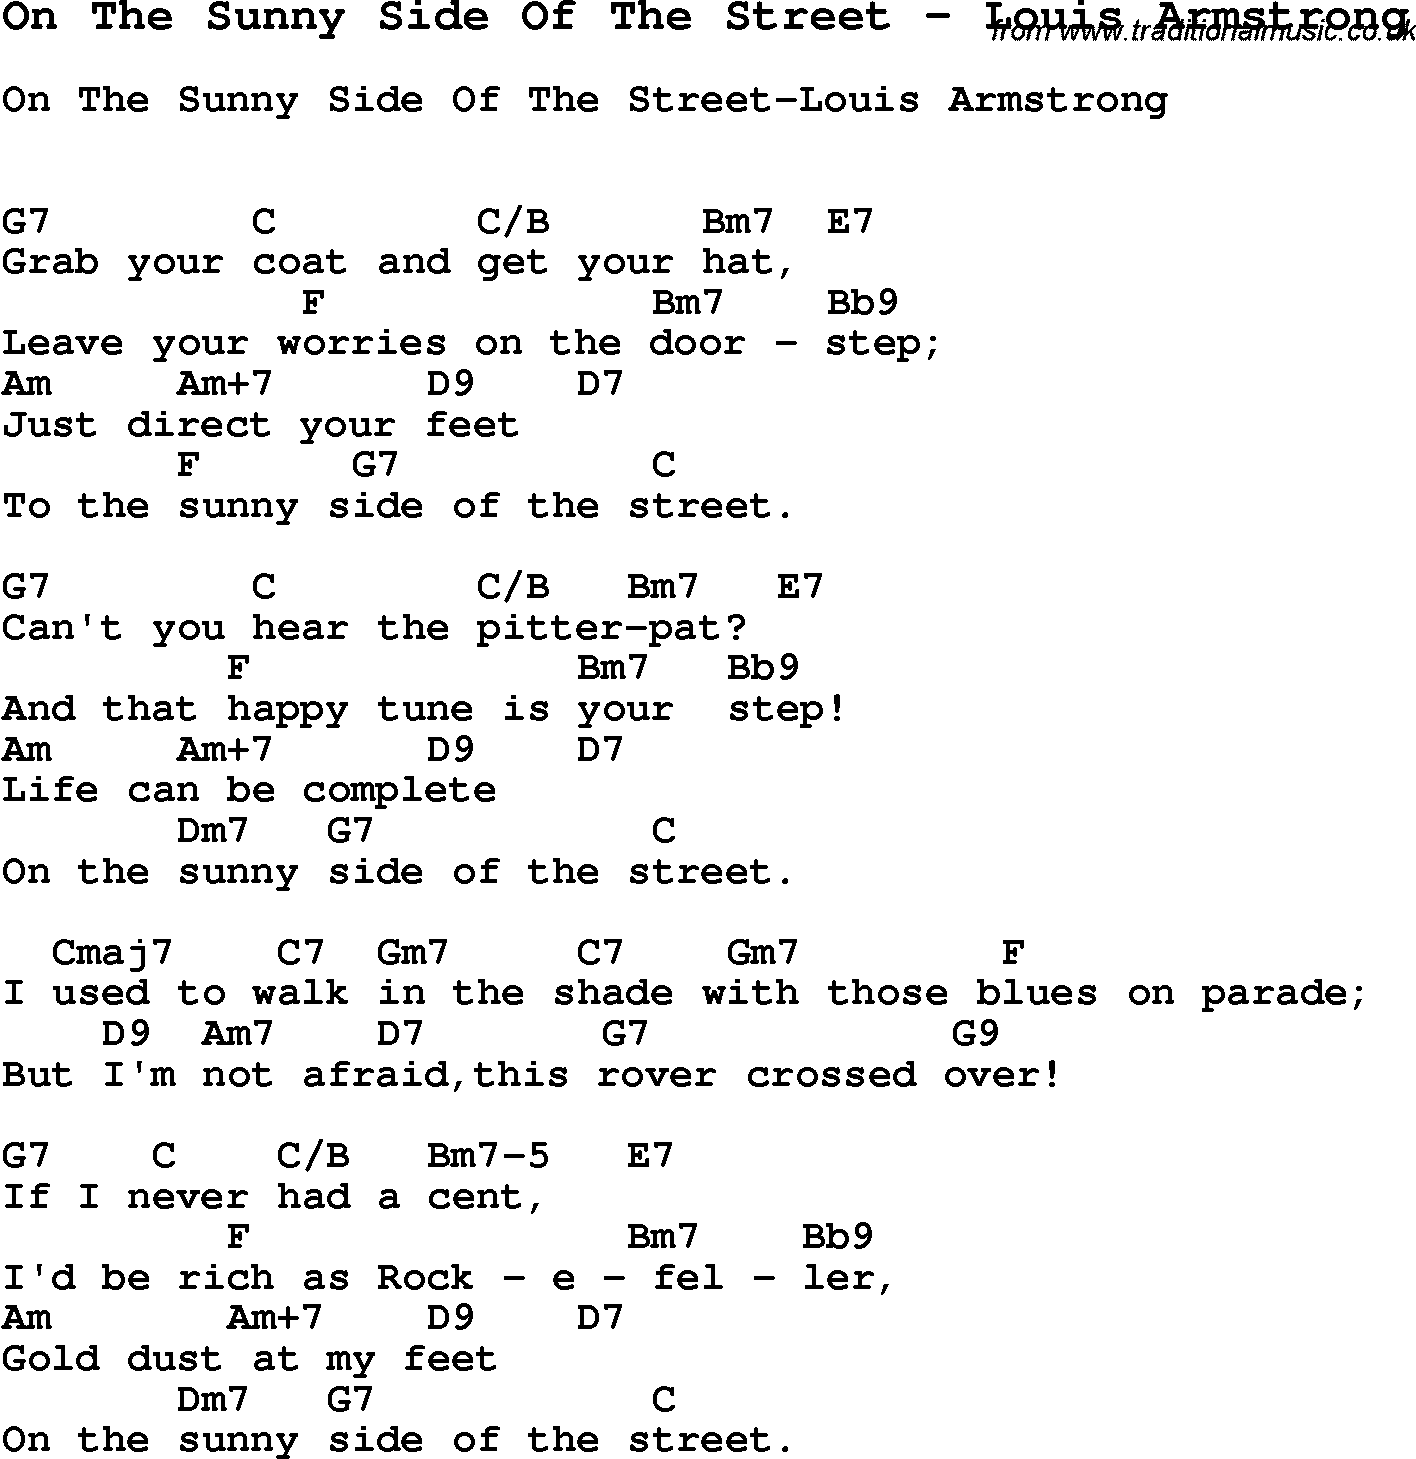 Song On The Sunny Side Of The Street By Louis Armstrong Song Lyric